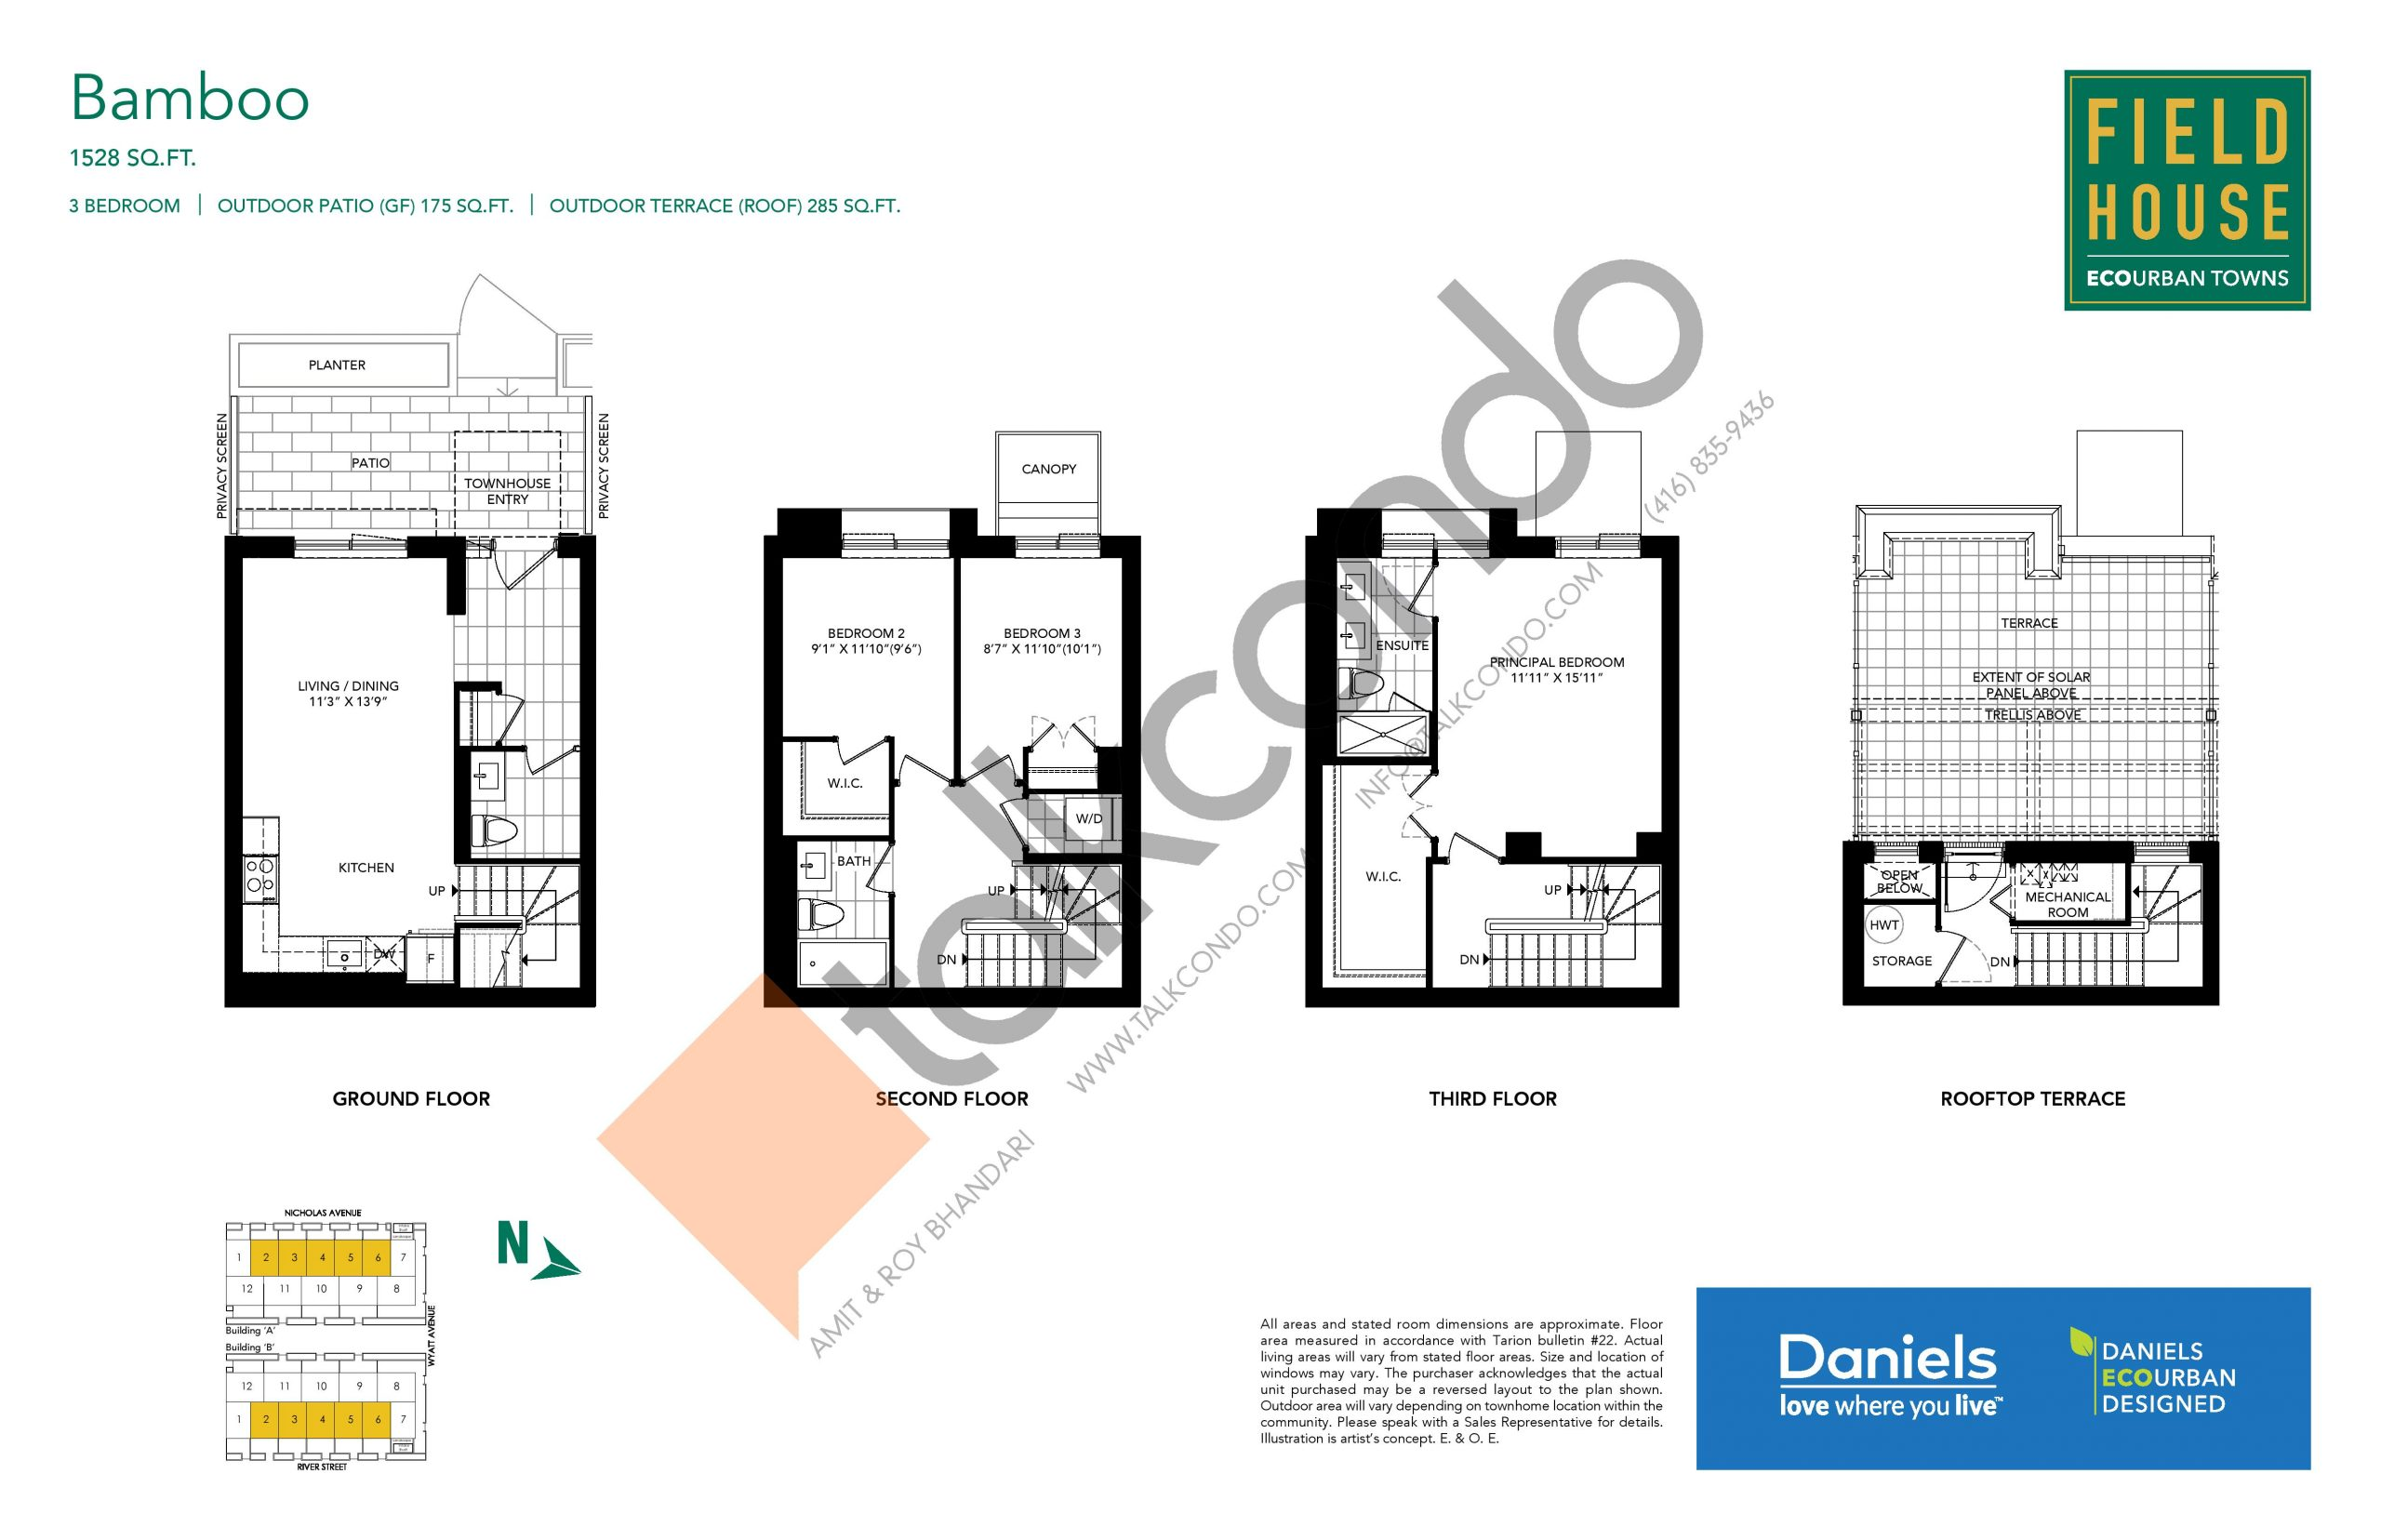 Bamboo Floor Plan at Field House Towns - 1528 sq.ft